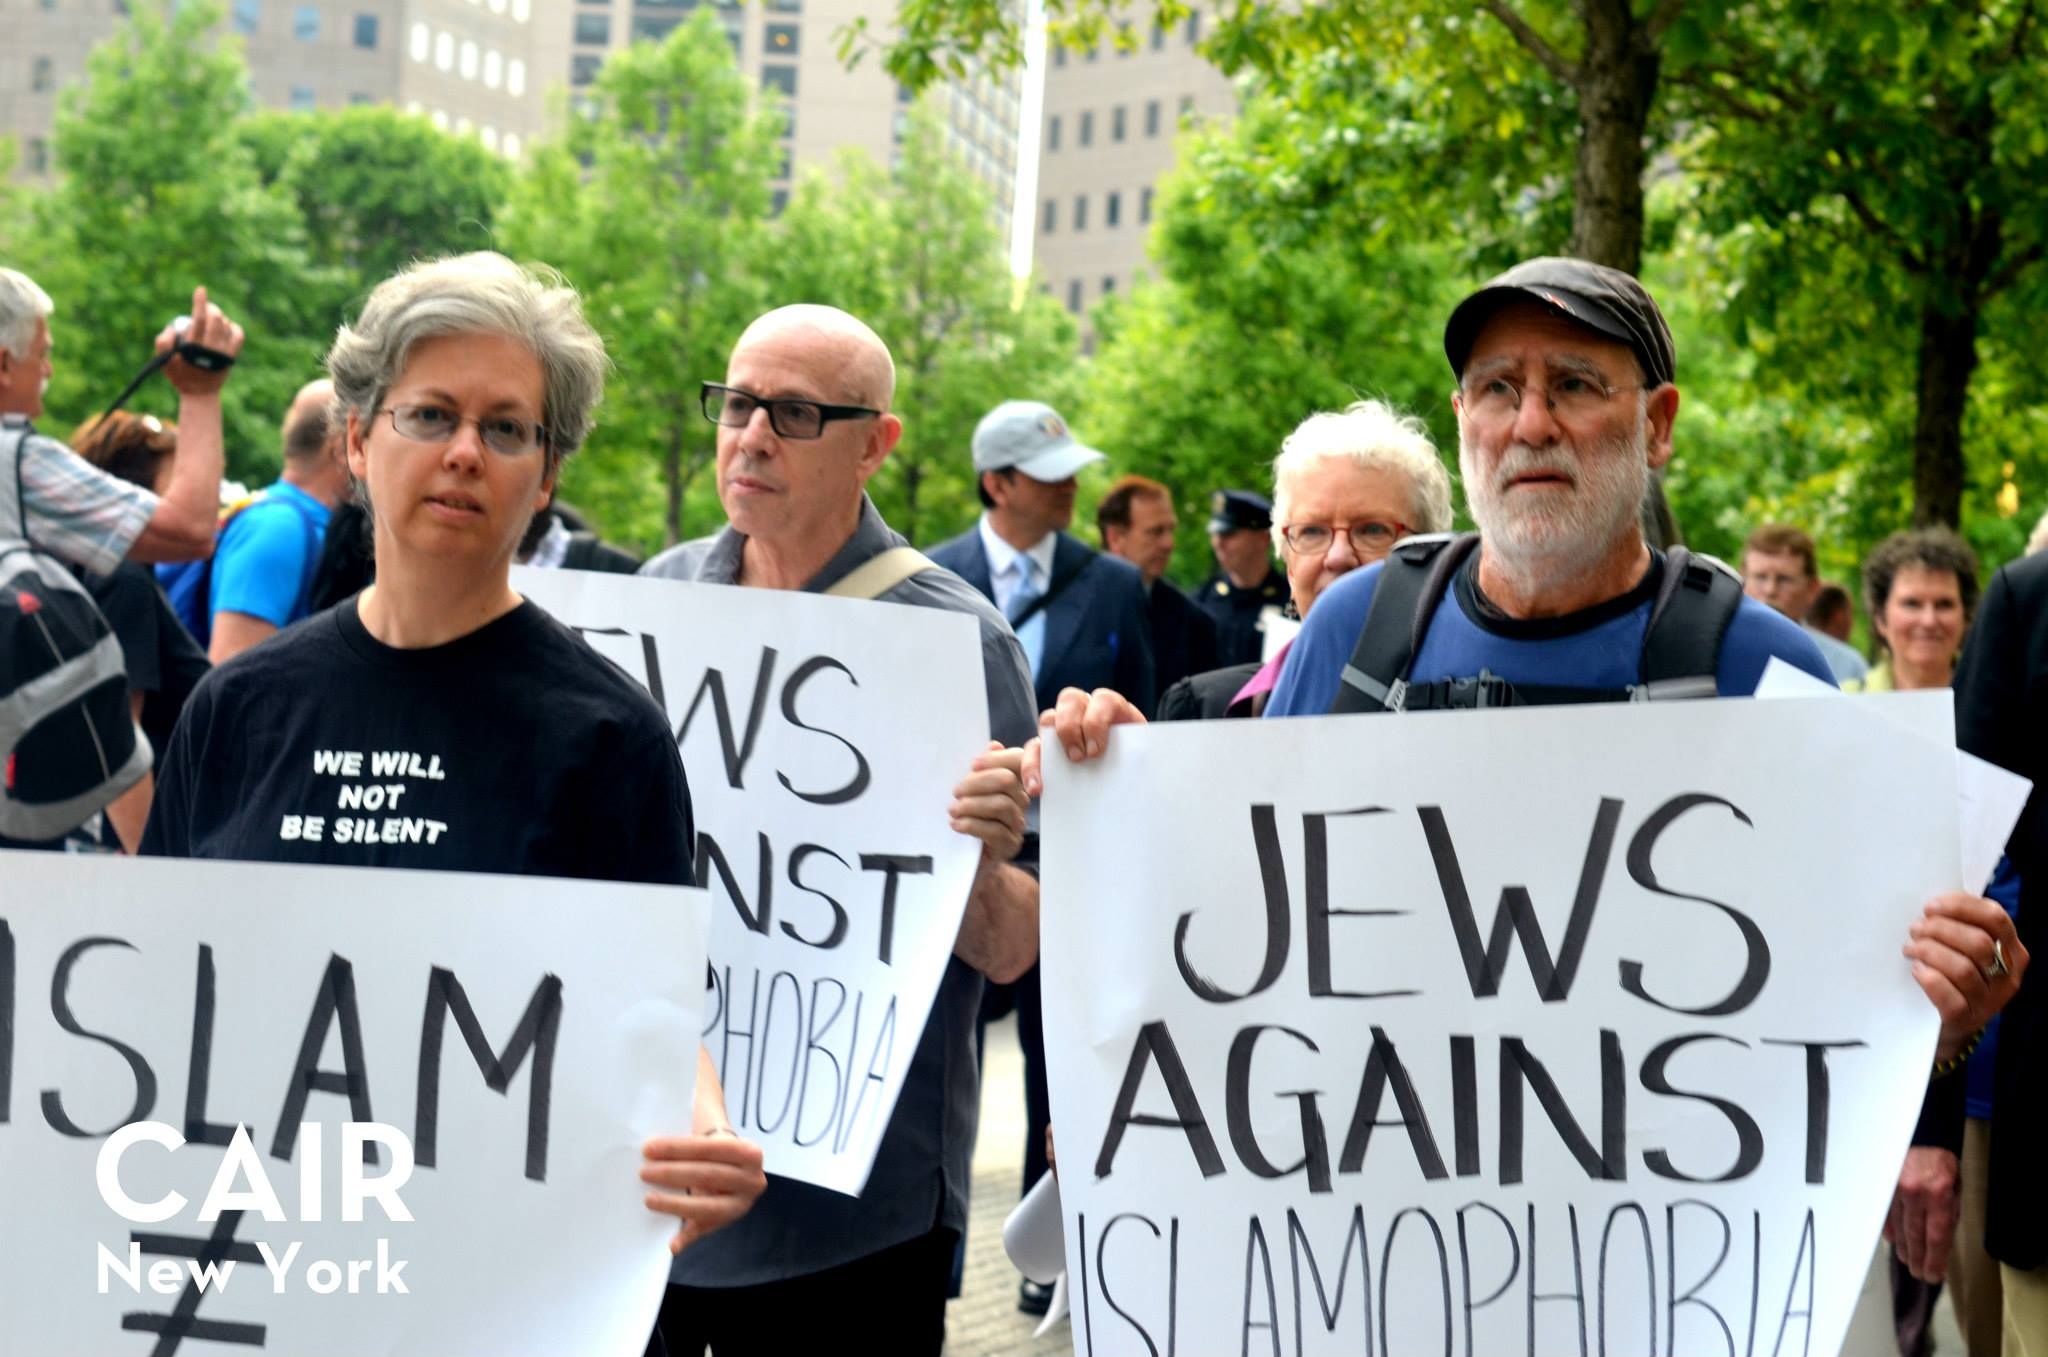 Jews Against Islamophobia 9-11 museum protest